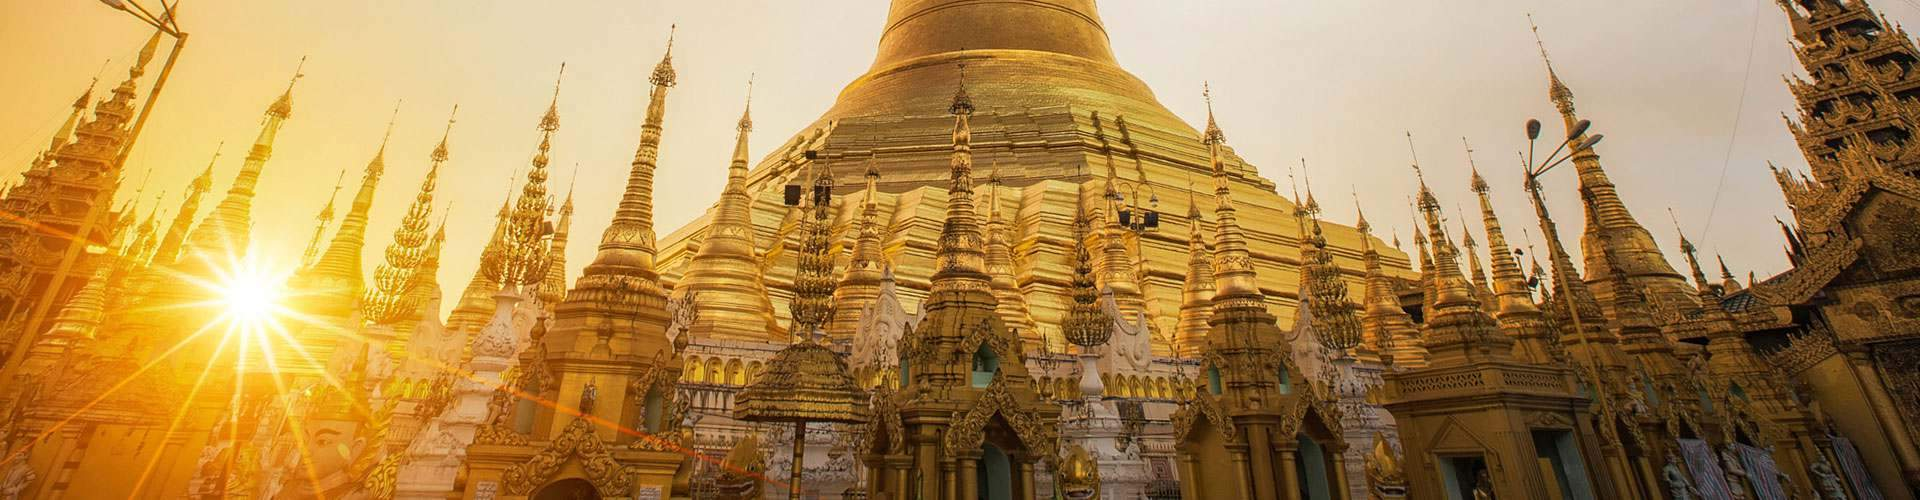 myanmar-attraction